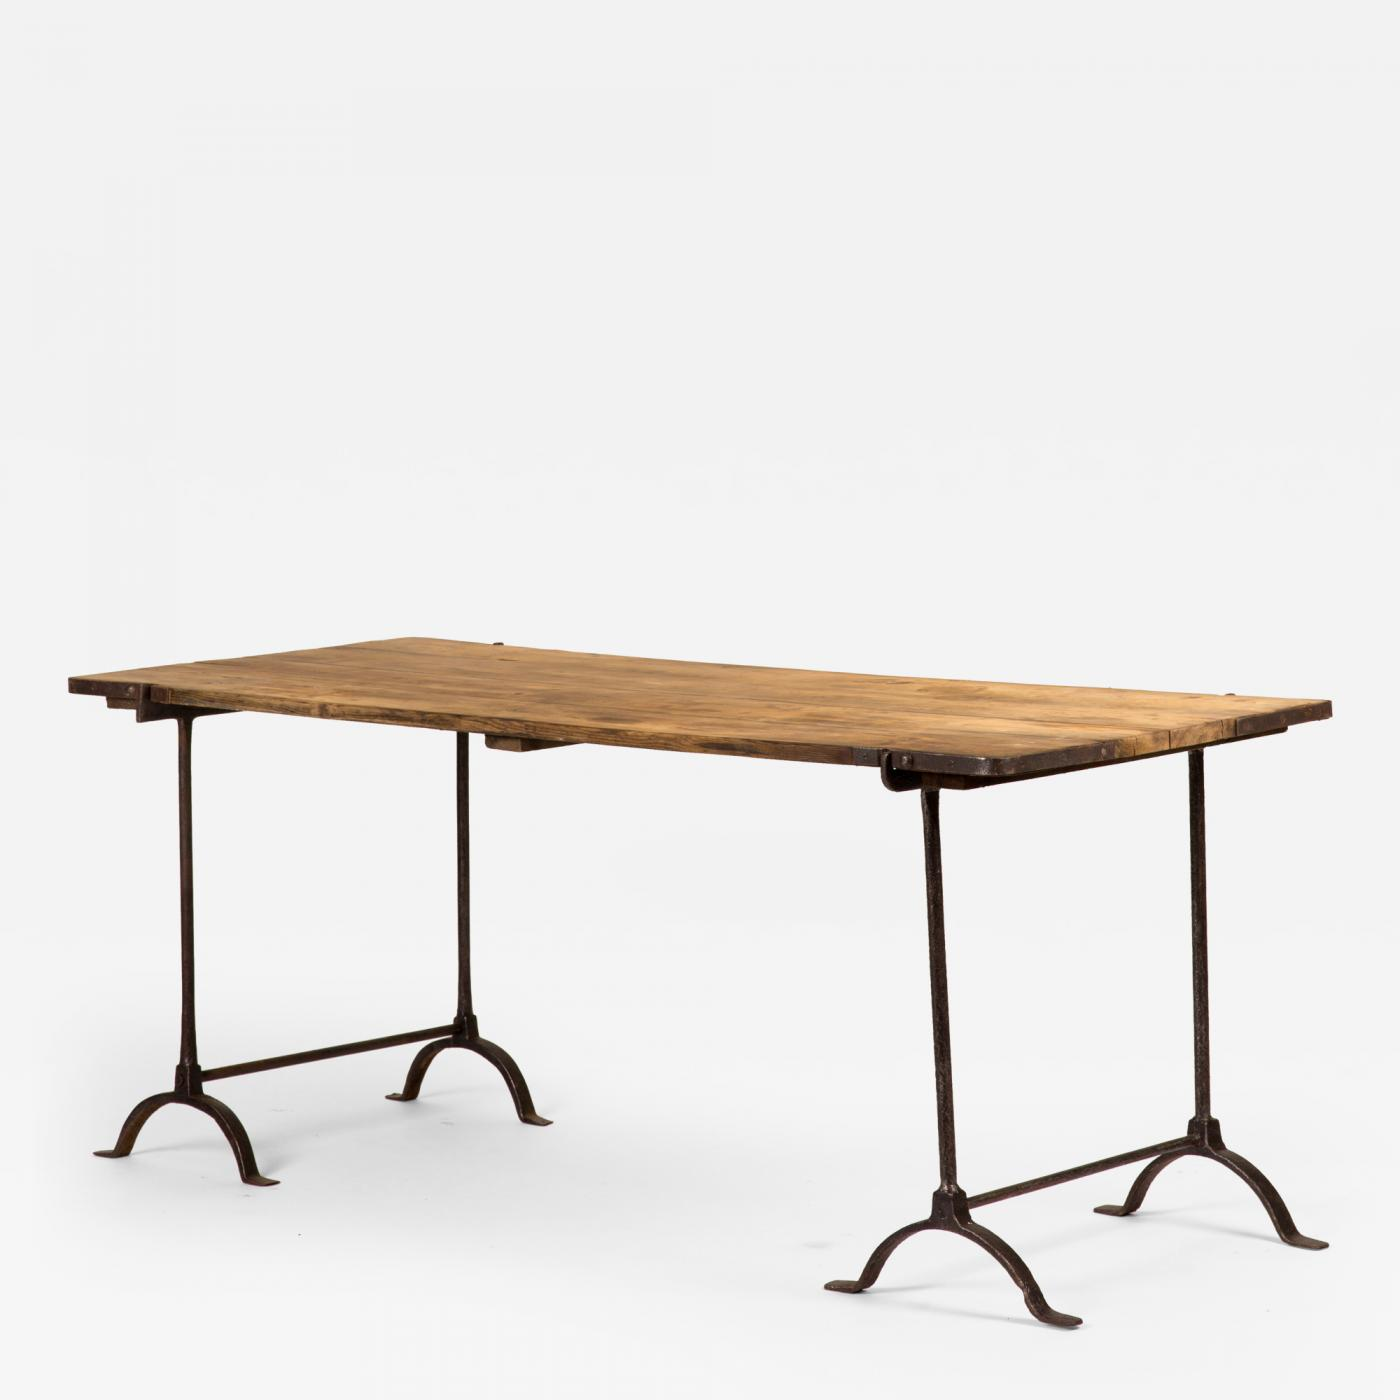 A trestle table with iron base and wood top banding